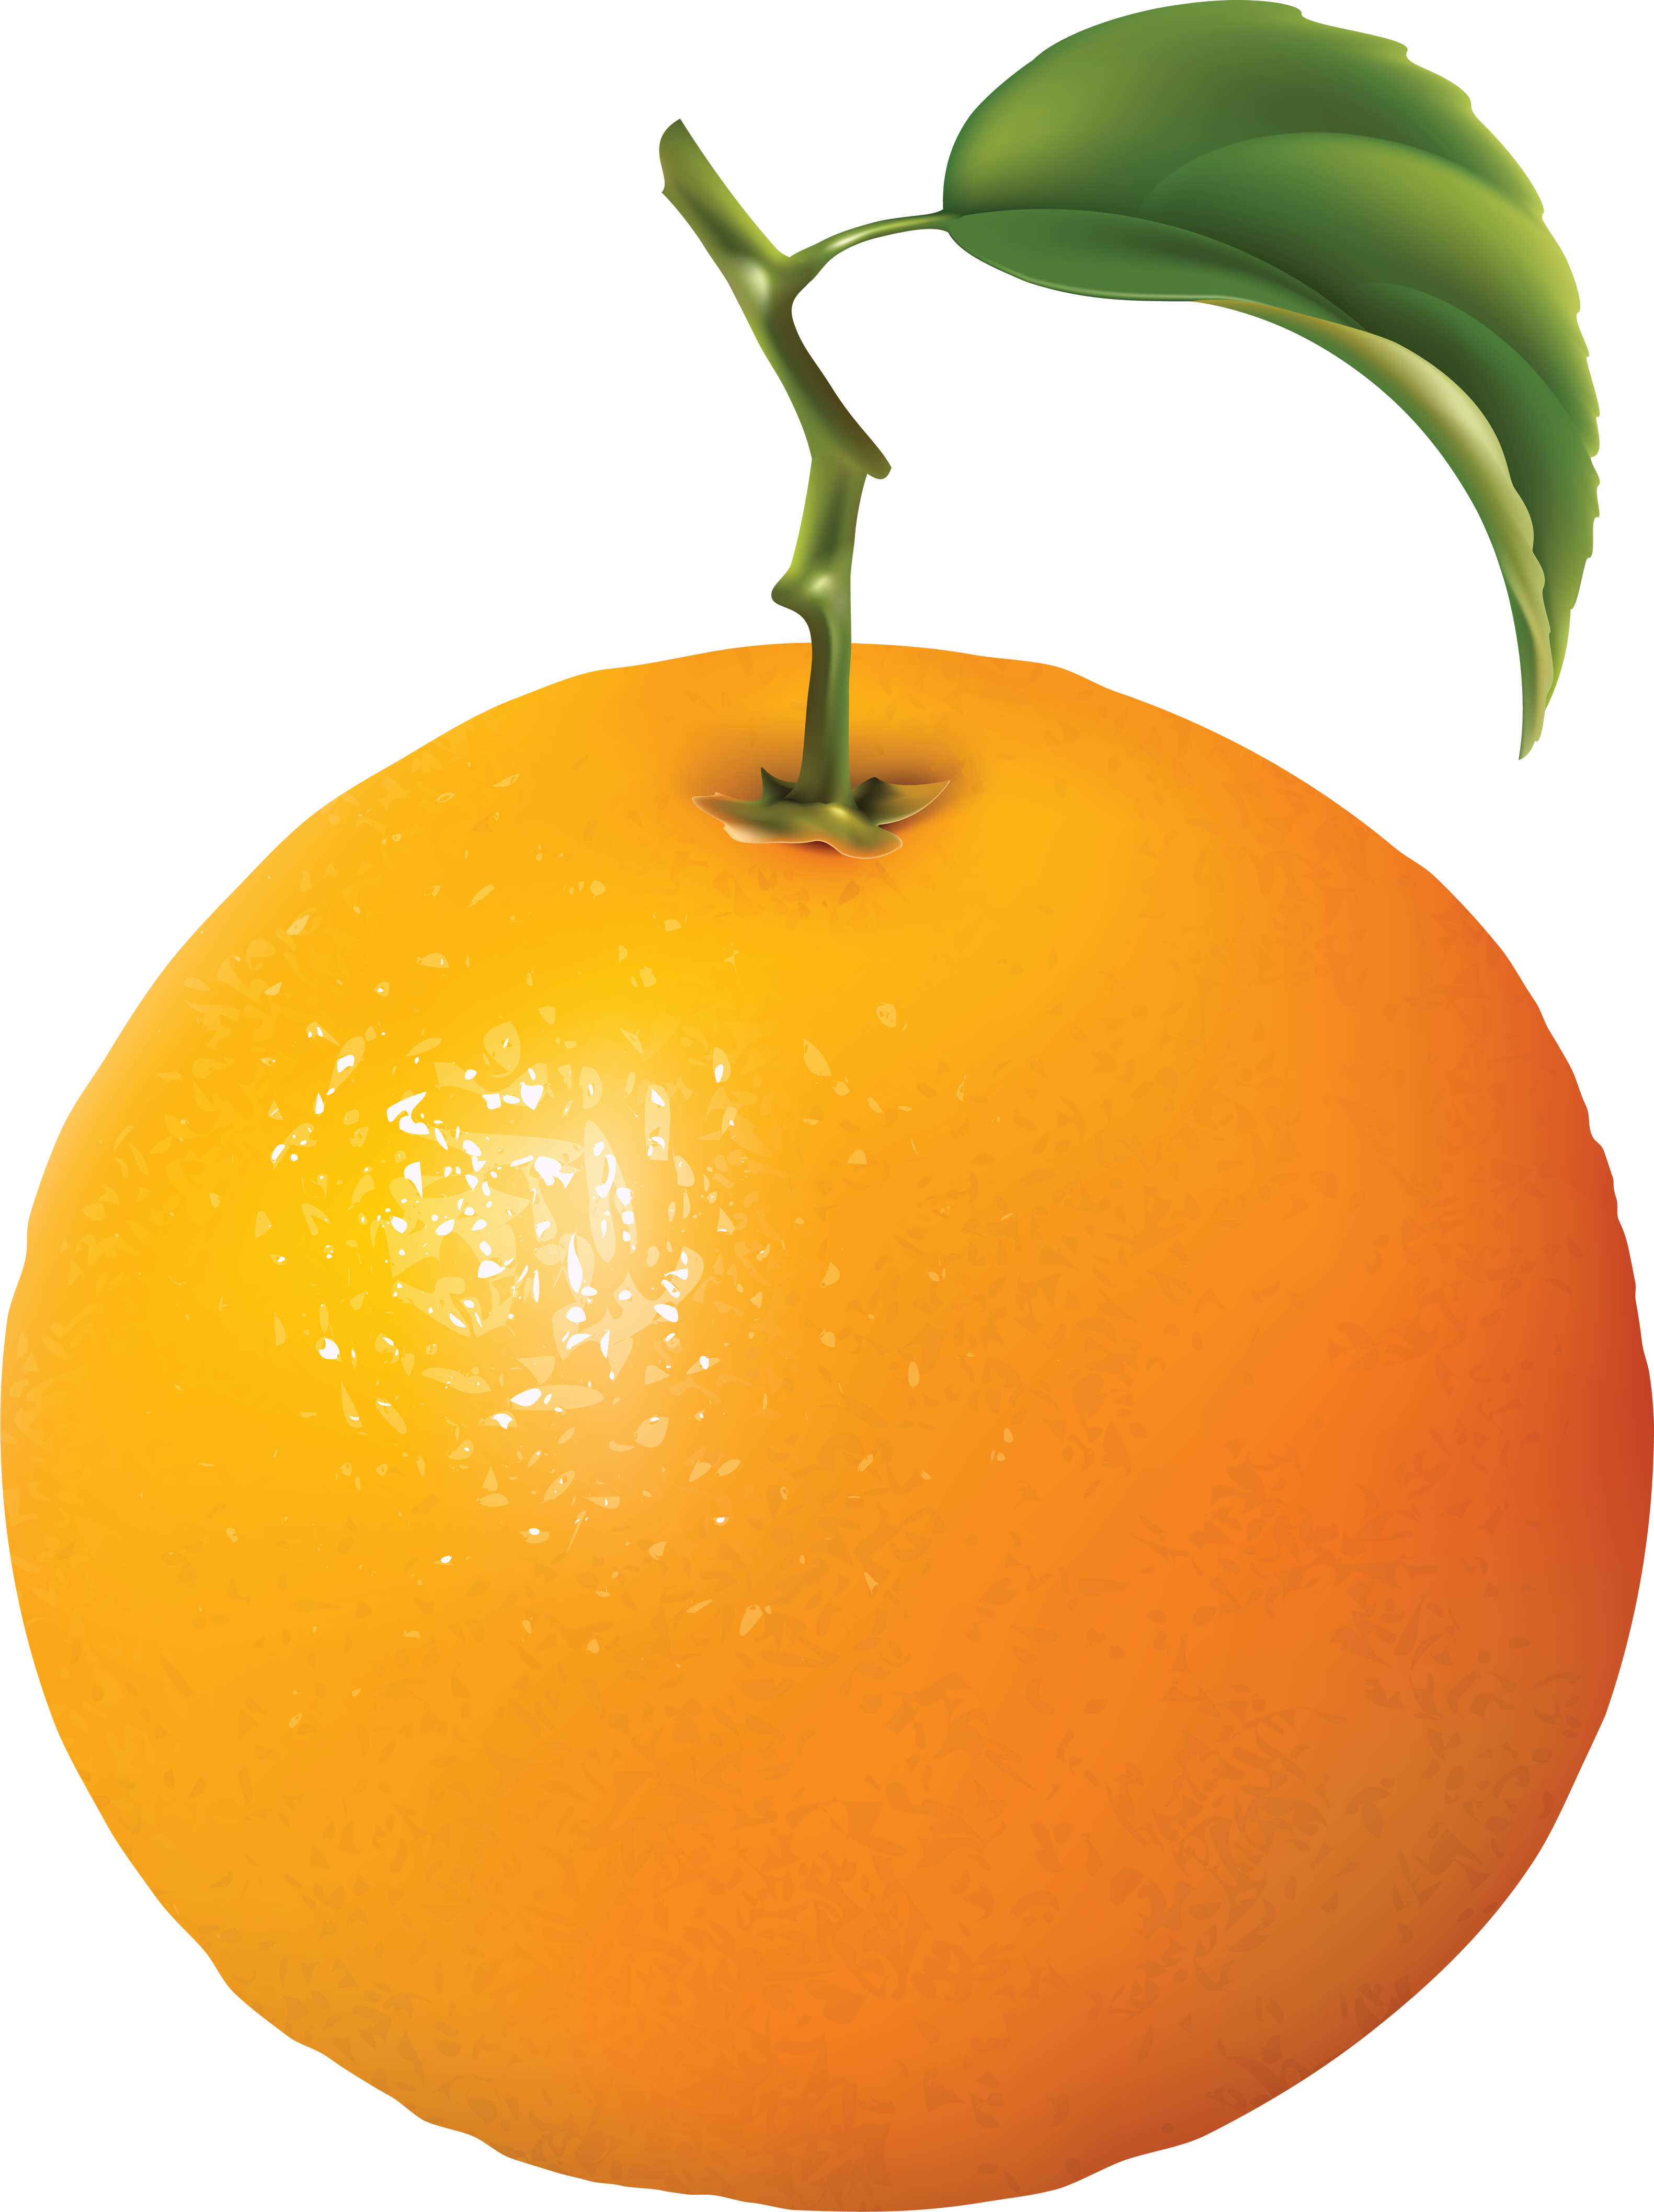 13 oranges clipart clipart images gallery for free download.